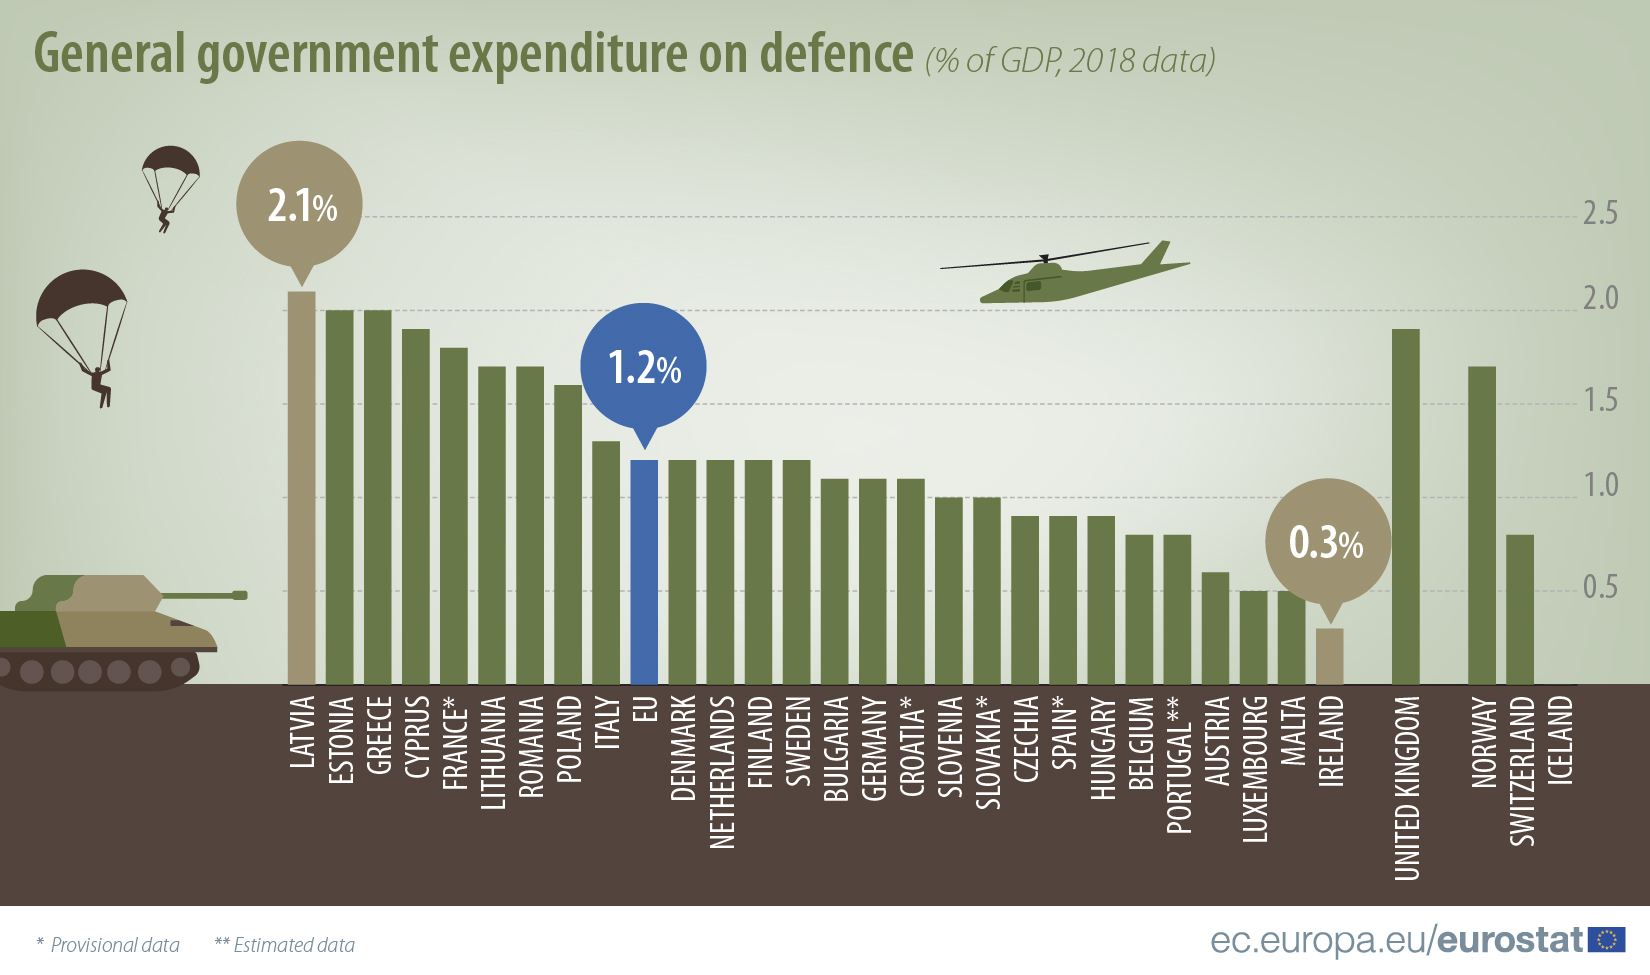 General government expenditure on defence, 2018